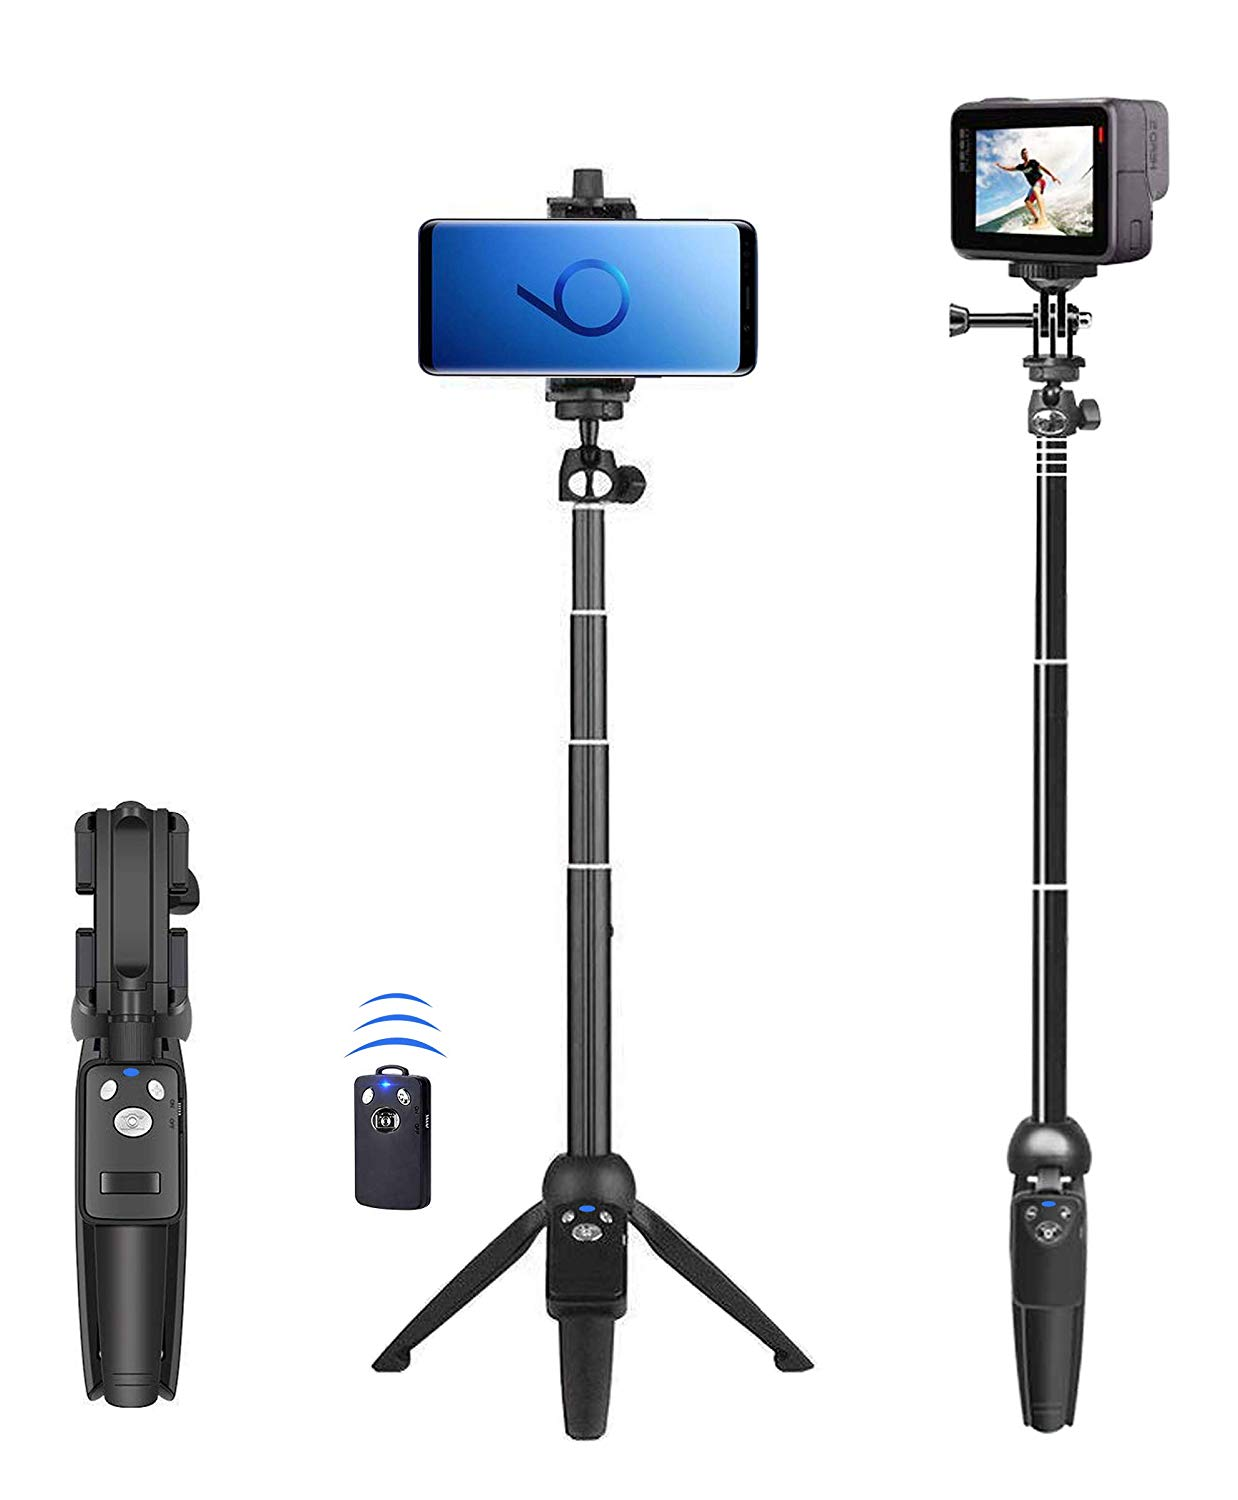 Image result for http://www.muzu.tv/best-selfie-stick-tripod-review/